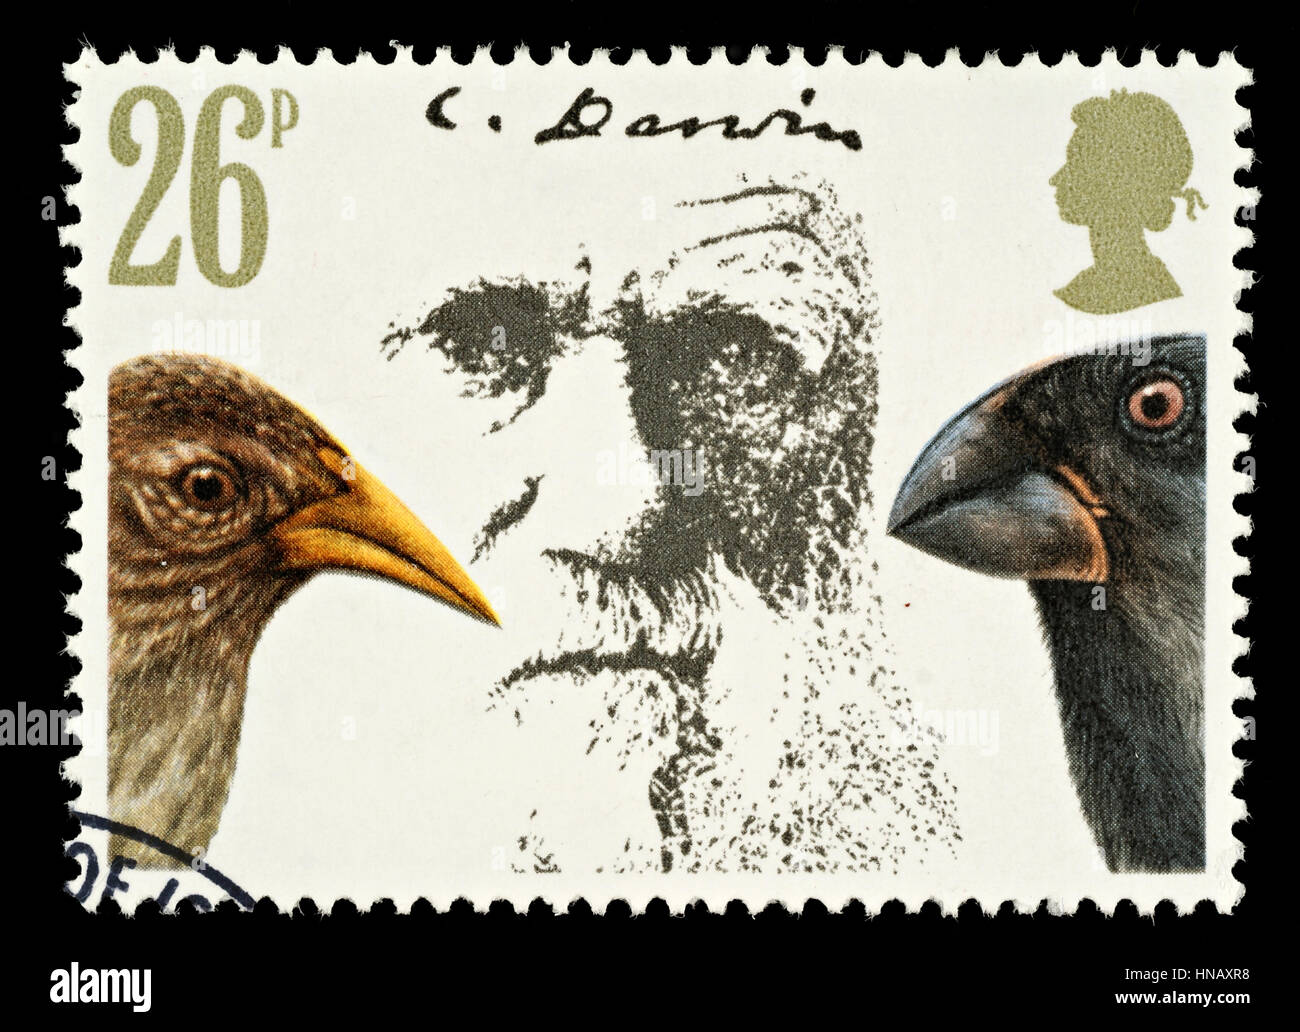 UNITED KINGDOM - CIRCA 1981: A British Used Postage Stamp Showing Charles Darwin Theory of Evolution and Finches - Stock Image